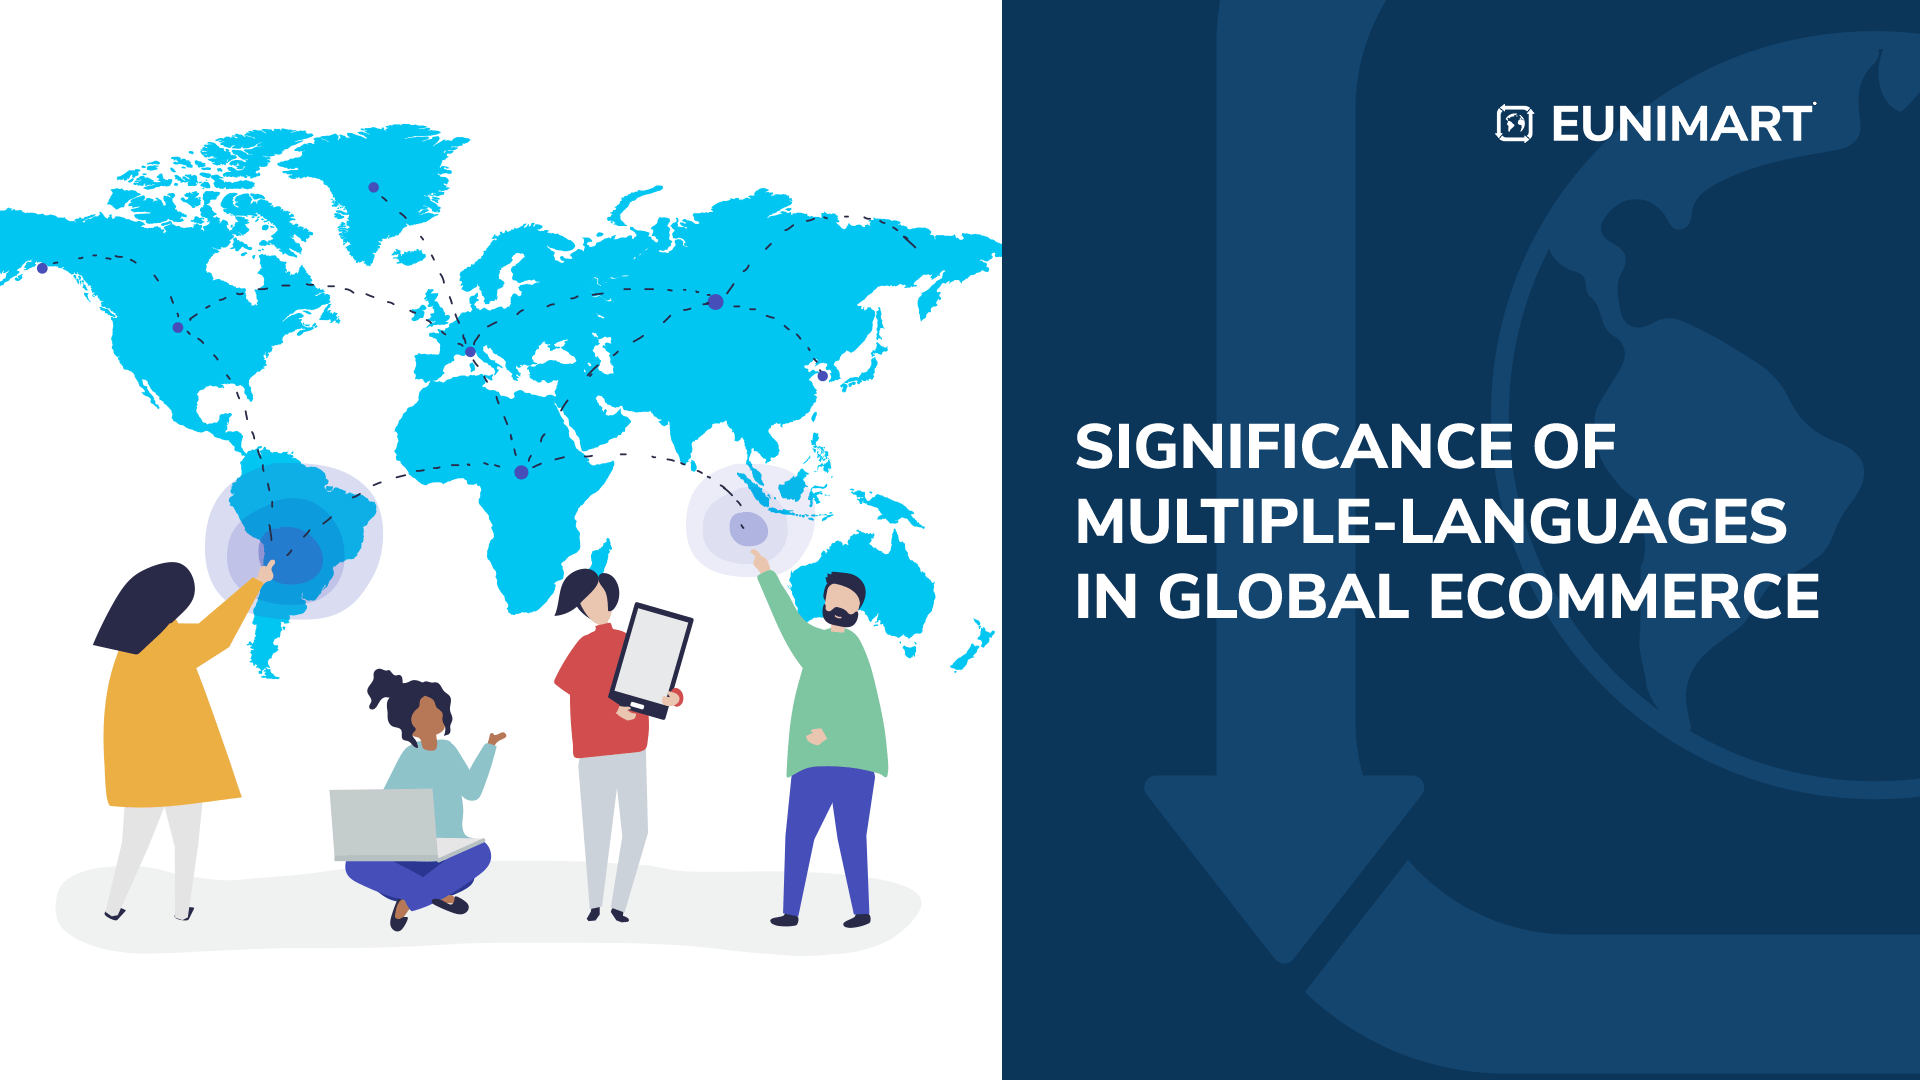 Significance of Multiple-Languages in Global Ecommerce